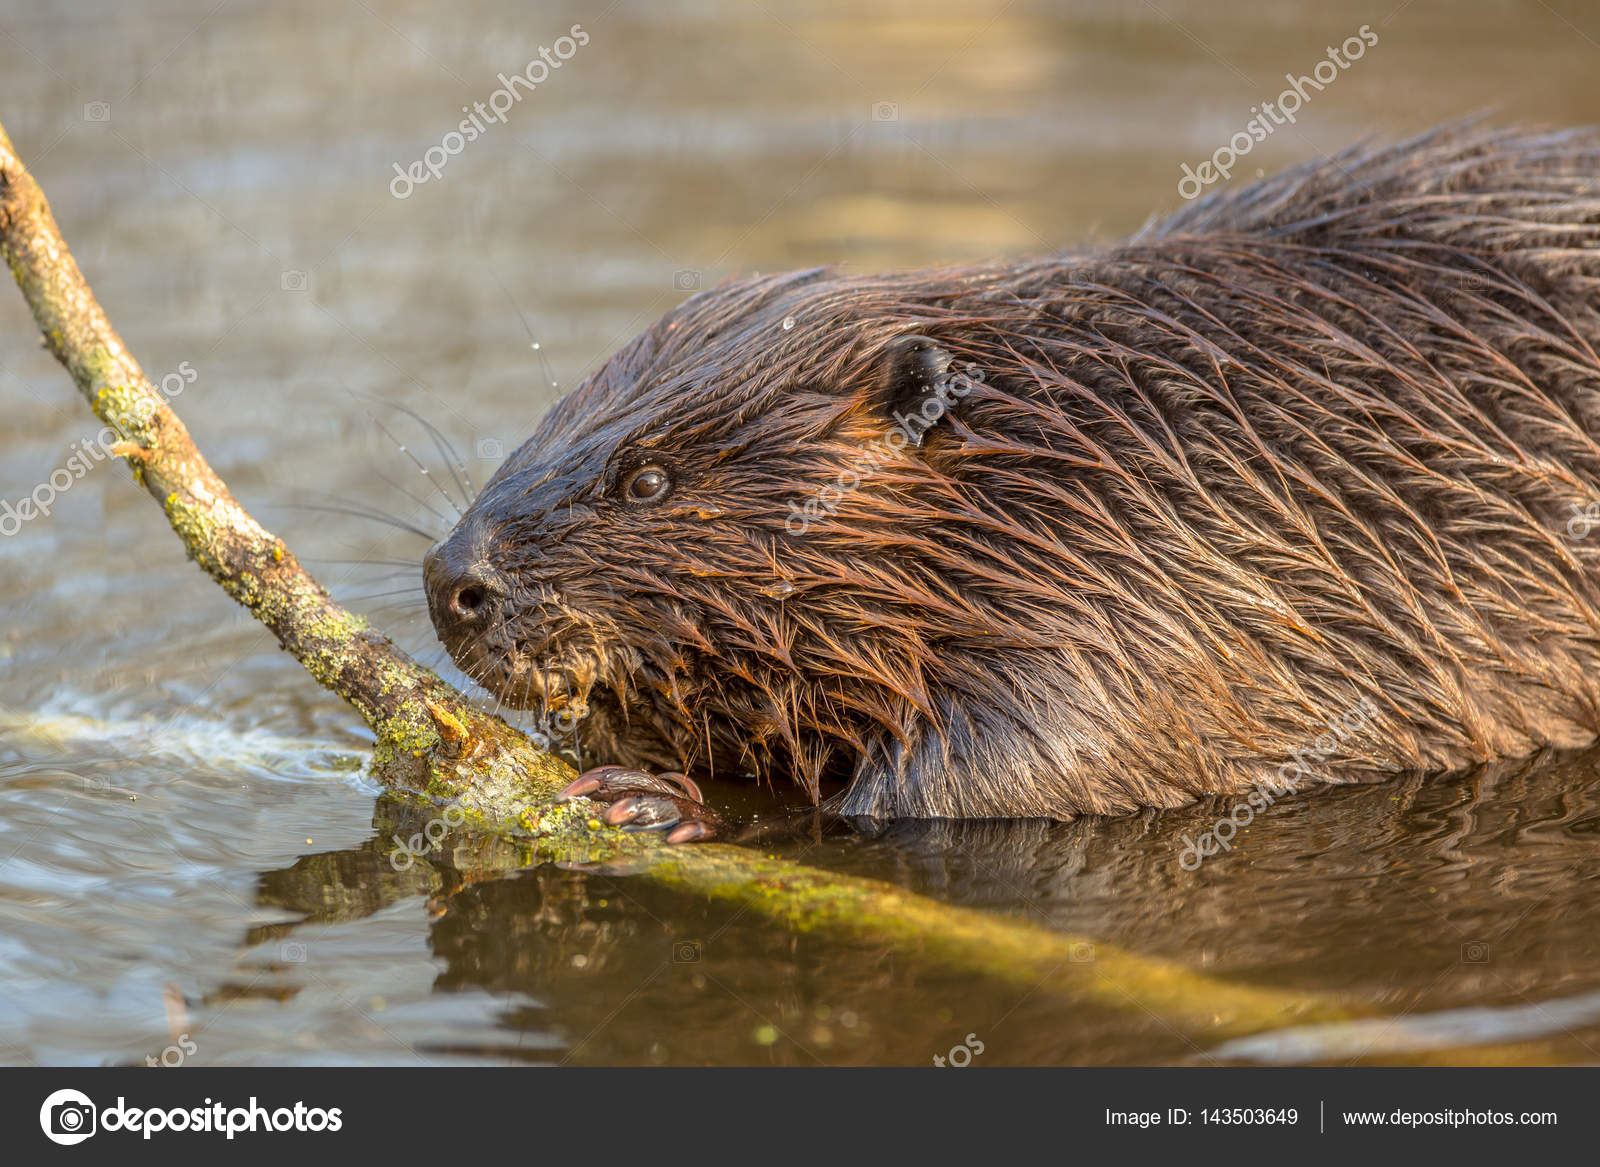 eurasian beaver in water \u2014 stock photo © creativenature 143503649 Beaver in Pushing Water eurasian beaver in water \u2014 stock photo